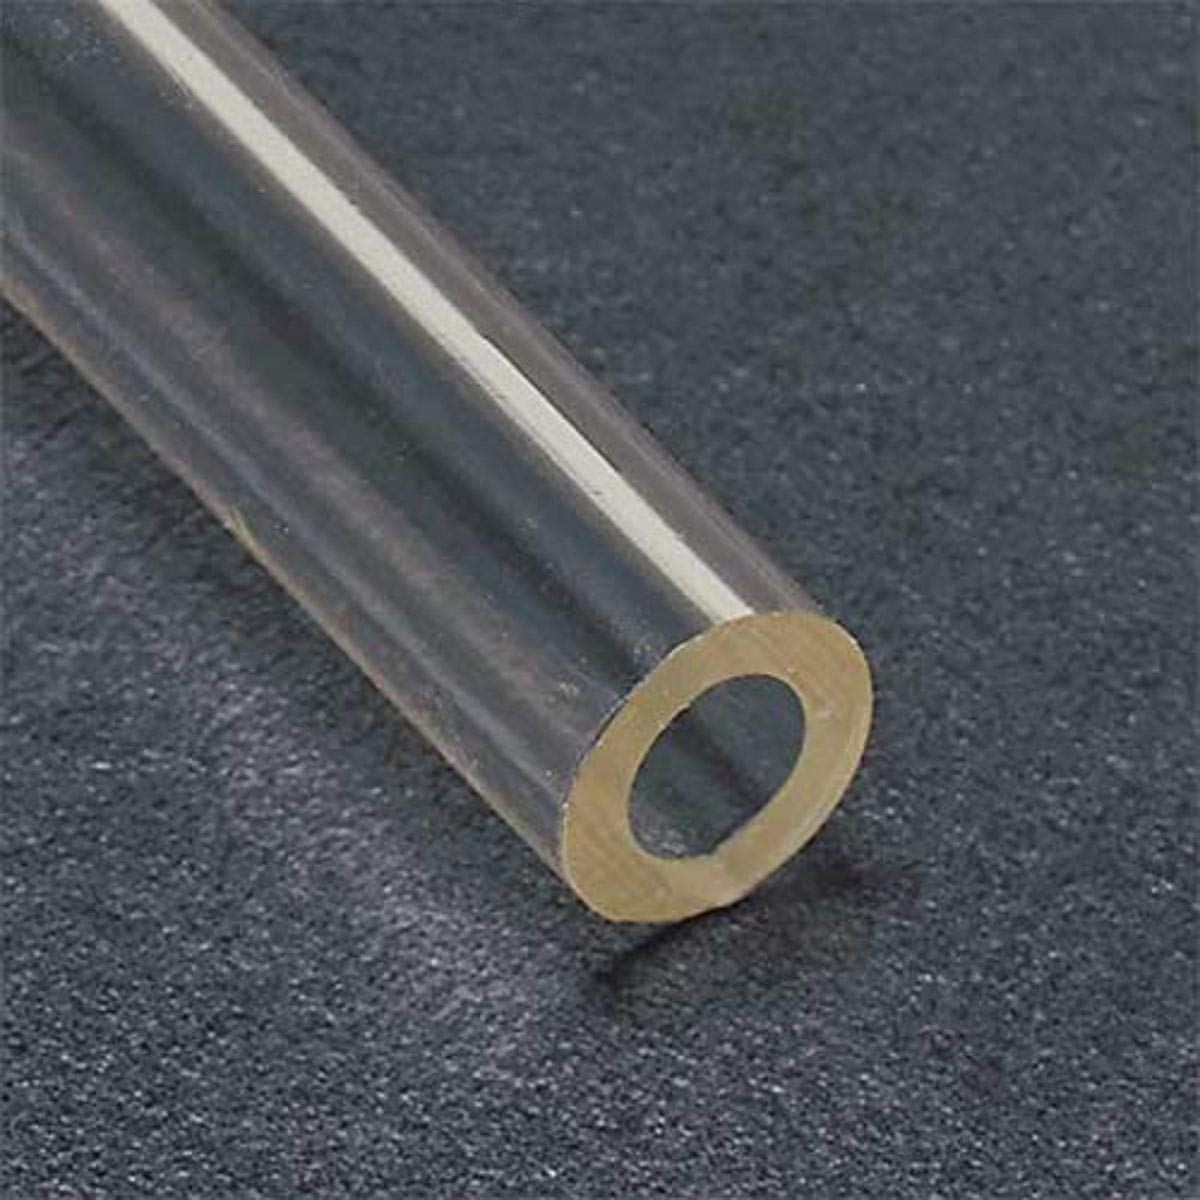 "Tygon - ACF00017 Non-DEHP Laboratory, Food & Beverage and Vacuum Plastic Tubing, Clear, 1/4"" ID x 3/8"" OD, 50 feet Length"